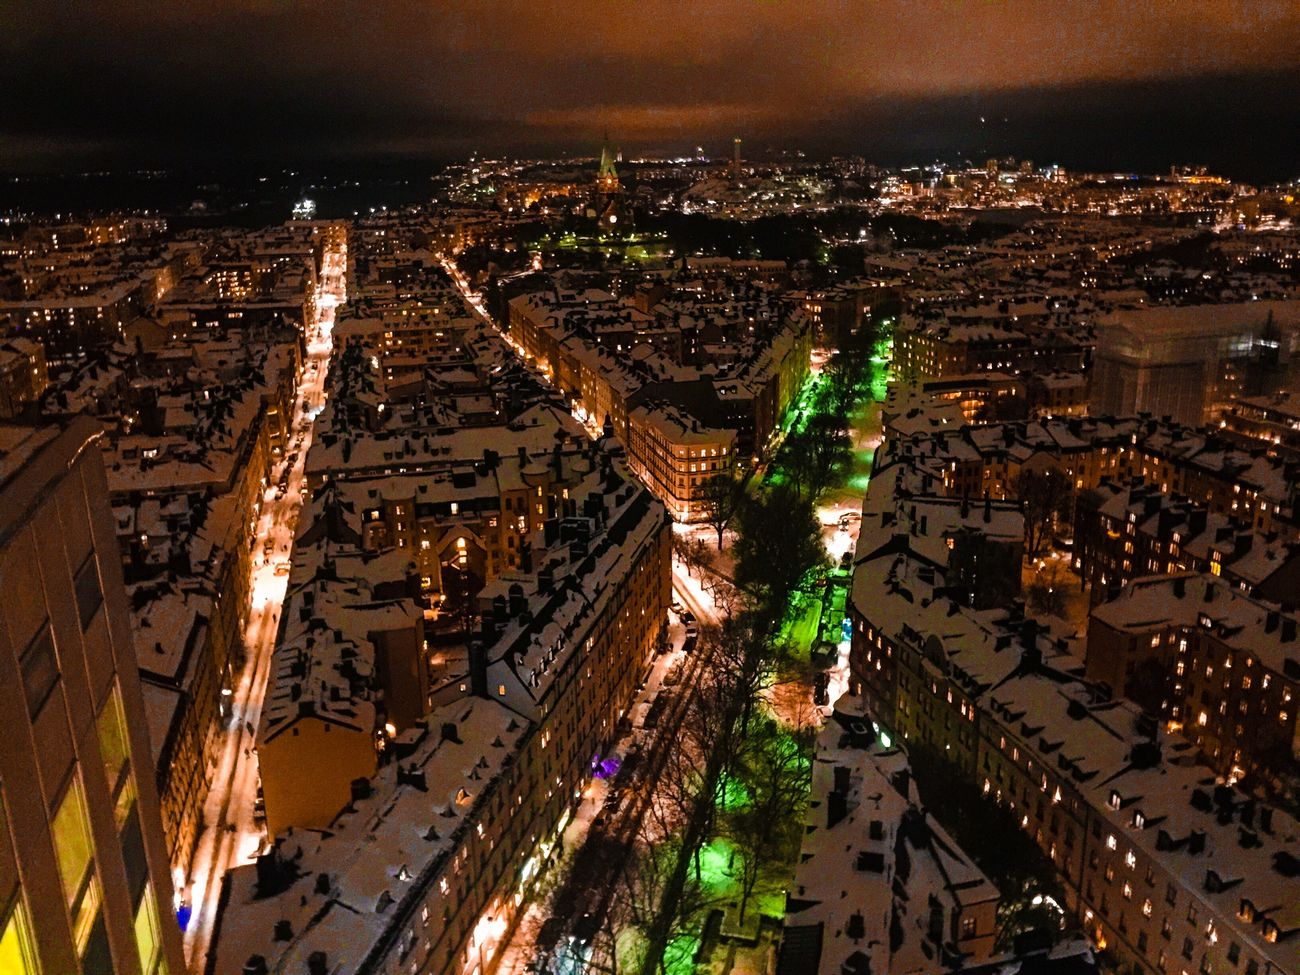 Cityscape City Architecture Illuminated Building Exterior Night Aerial View High Angle View Residential District Residential Building Built Structure Crowded Travel Destinations Outdoors Sky Snow Snow Covered Snow ❄ Nightphotography Night Photography Night Lights Night View